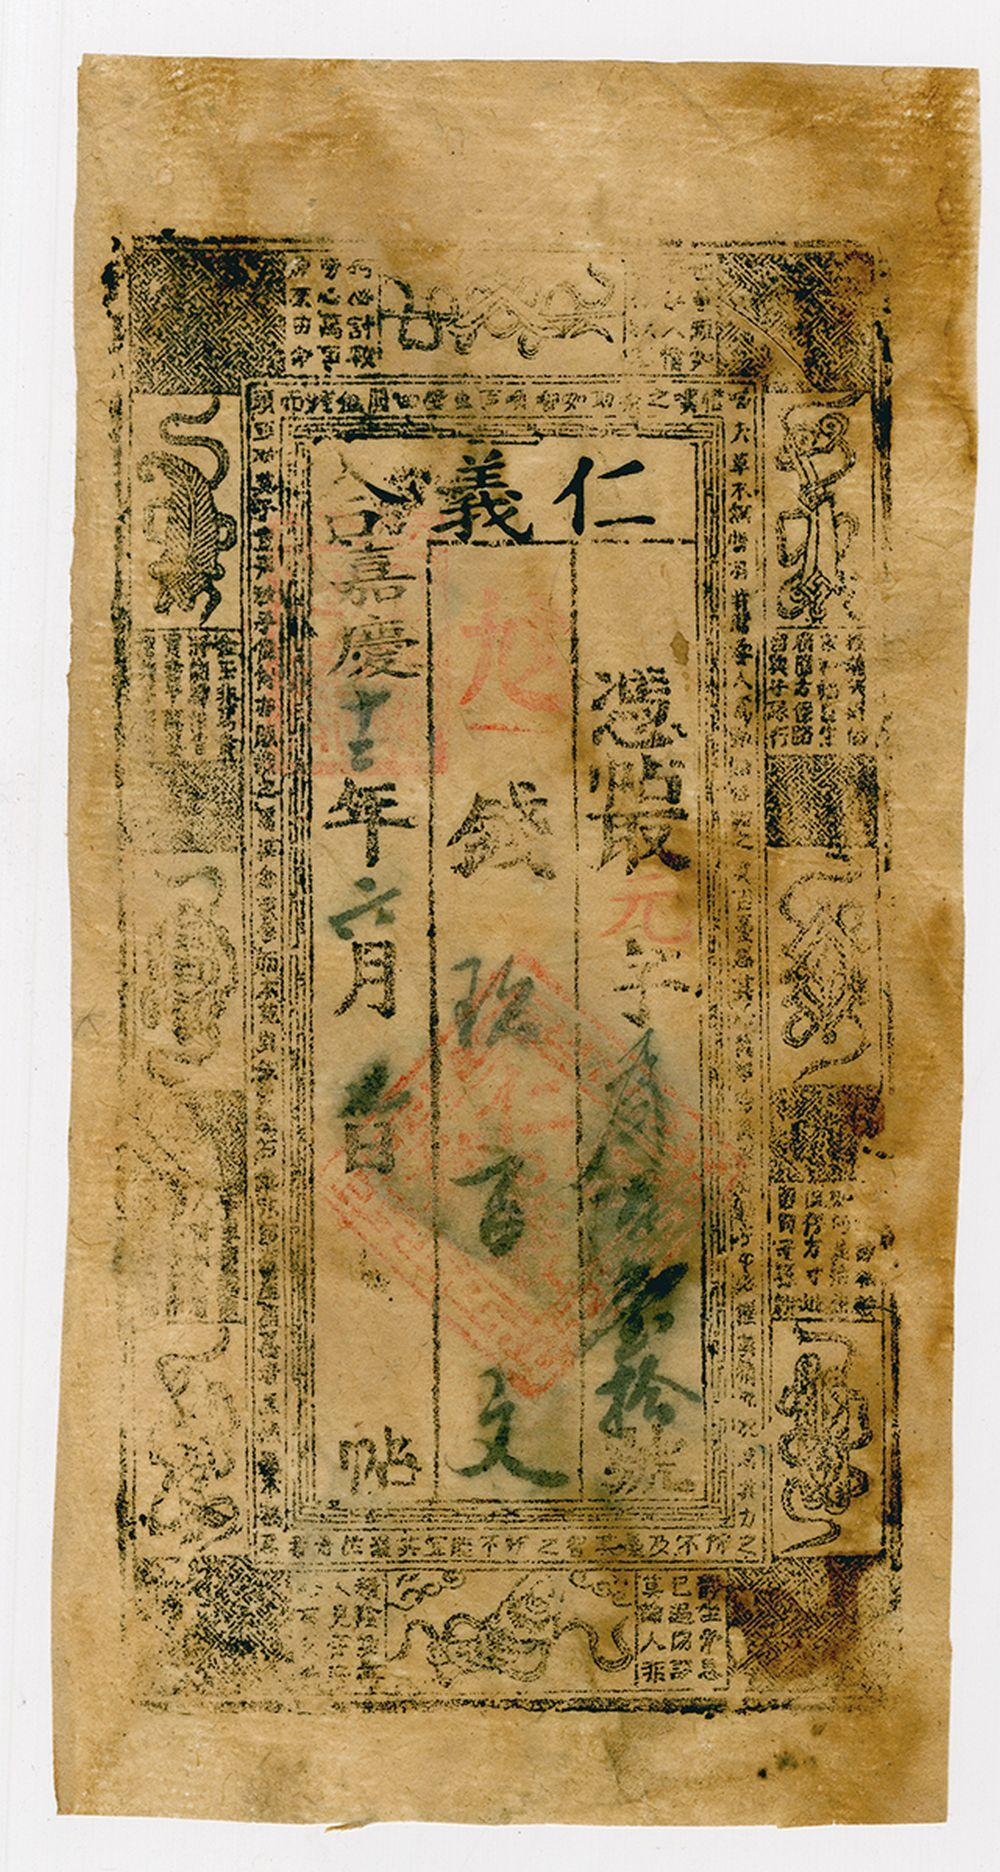 Renyihe Bank private banknote 900 cash 1807.